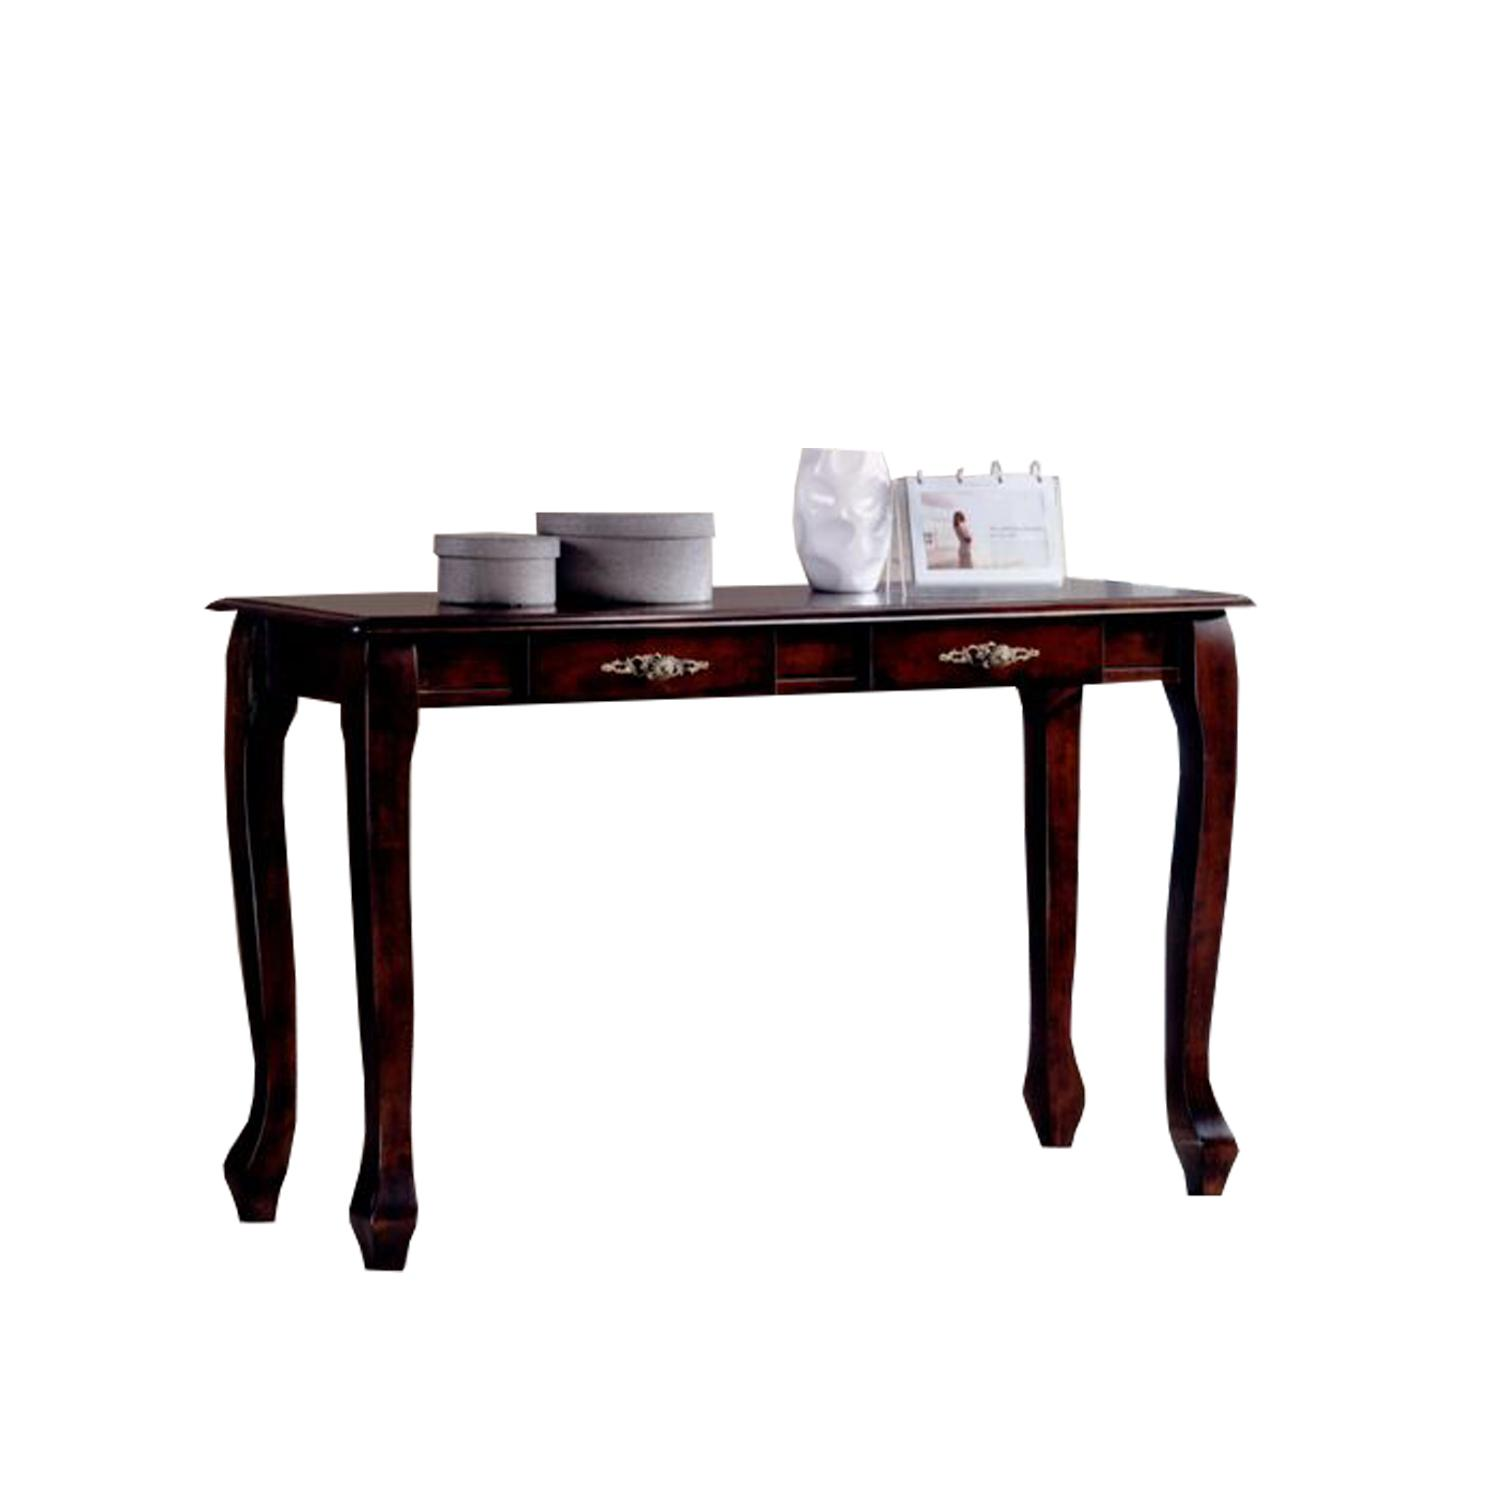 Berry Console Table